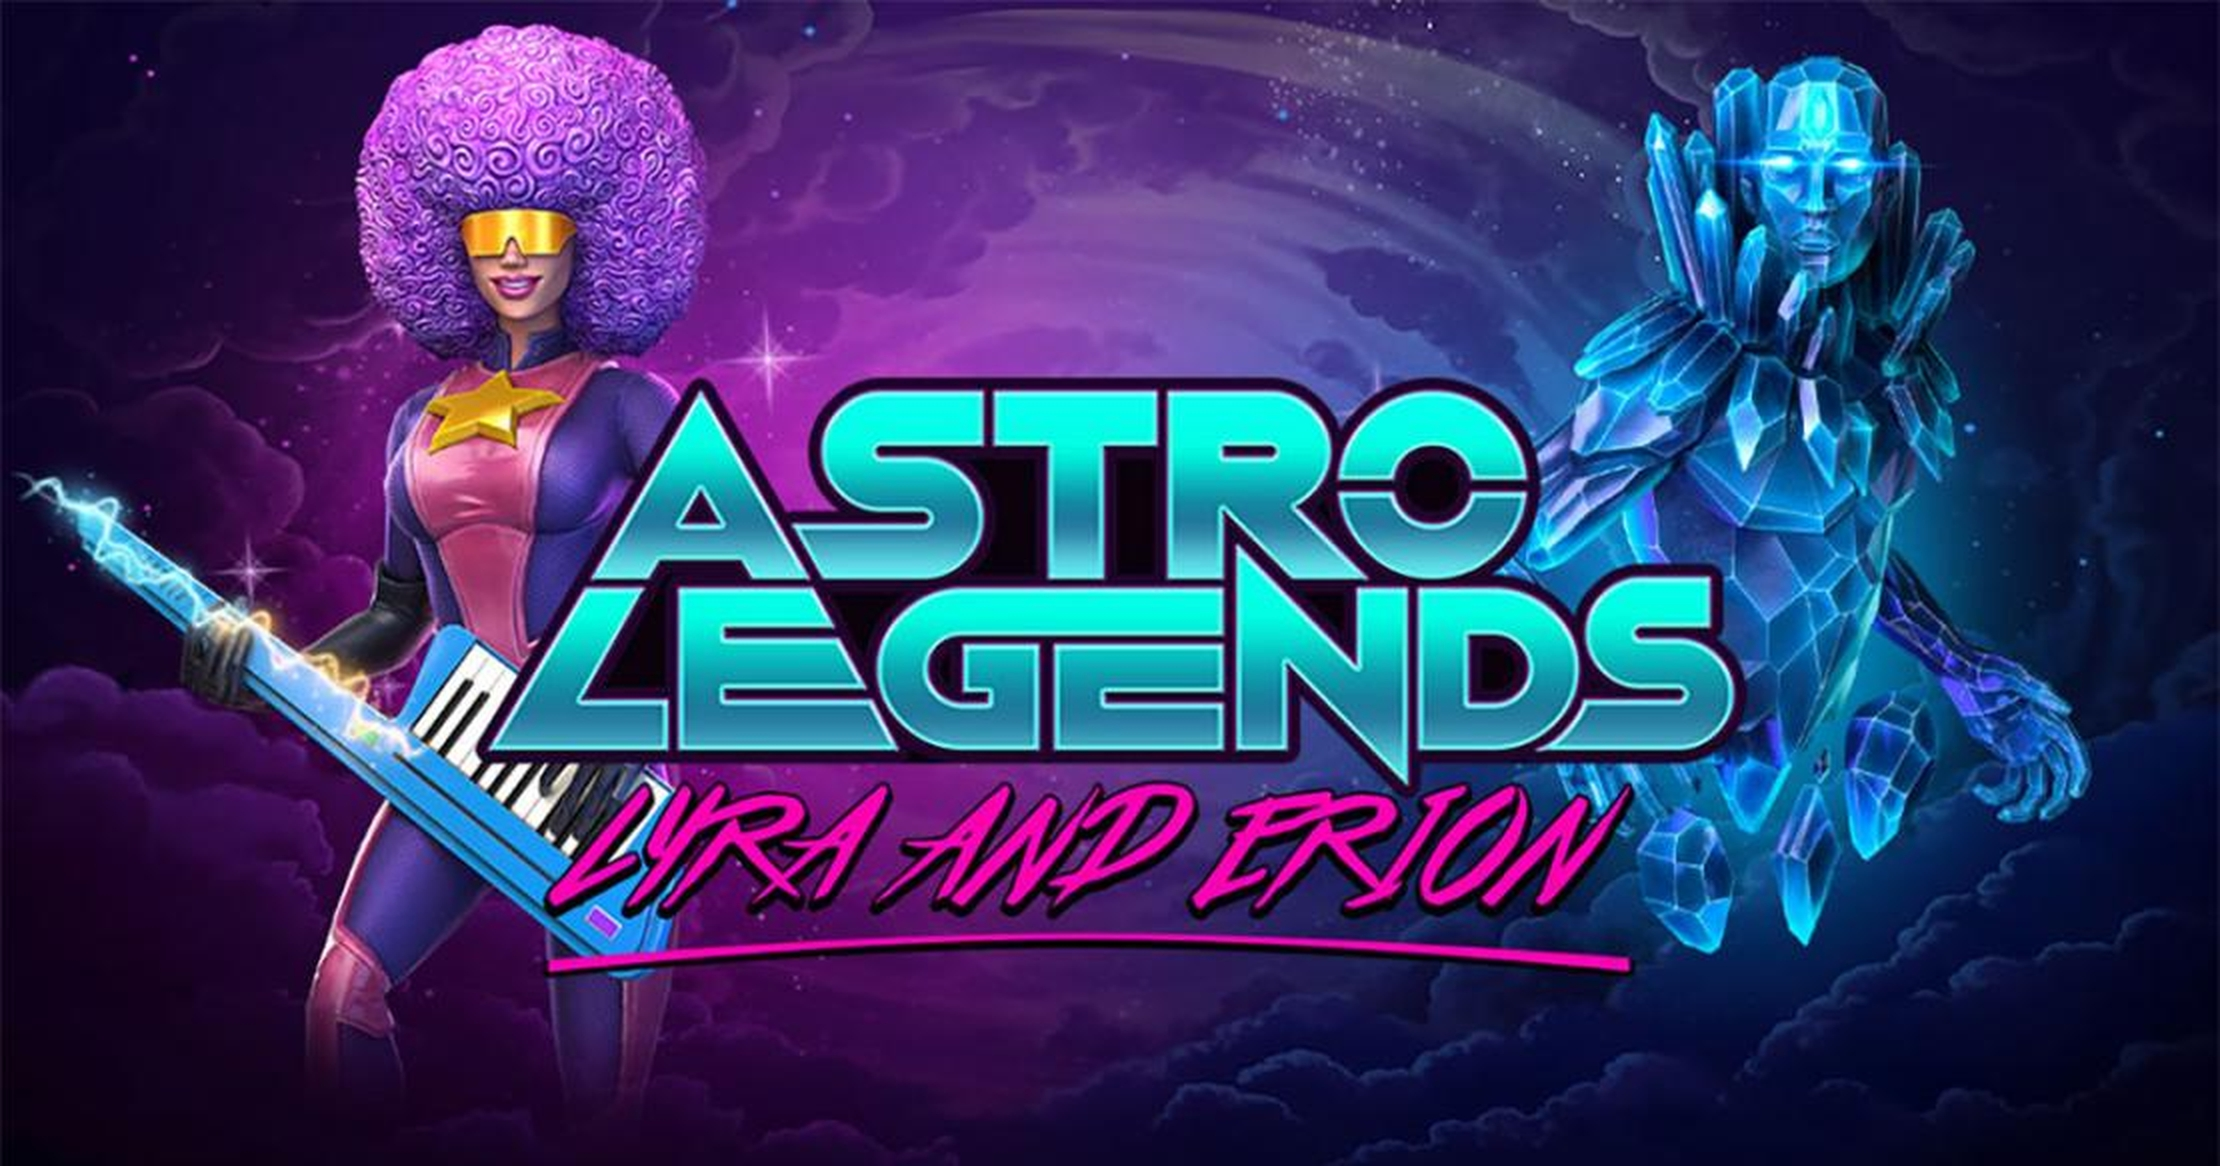 The Astro Legends: Lyra and Erion Online Slot Demo Game by Foxium